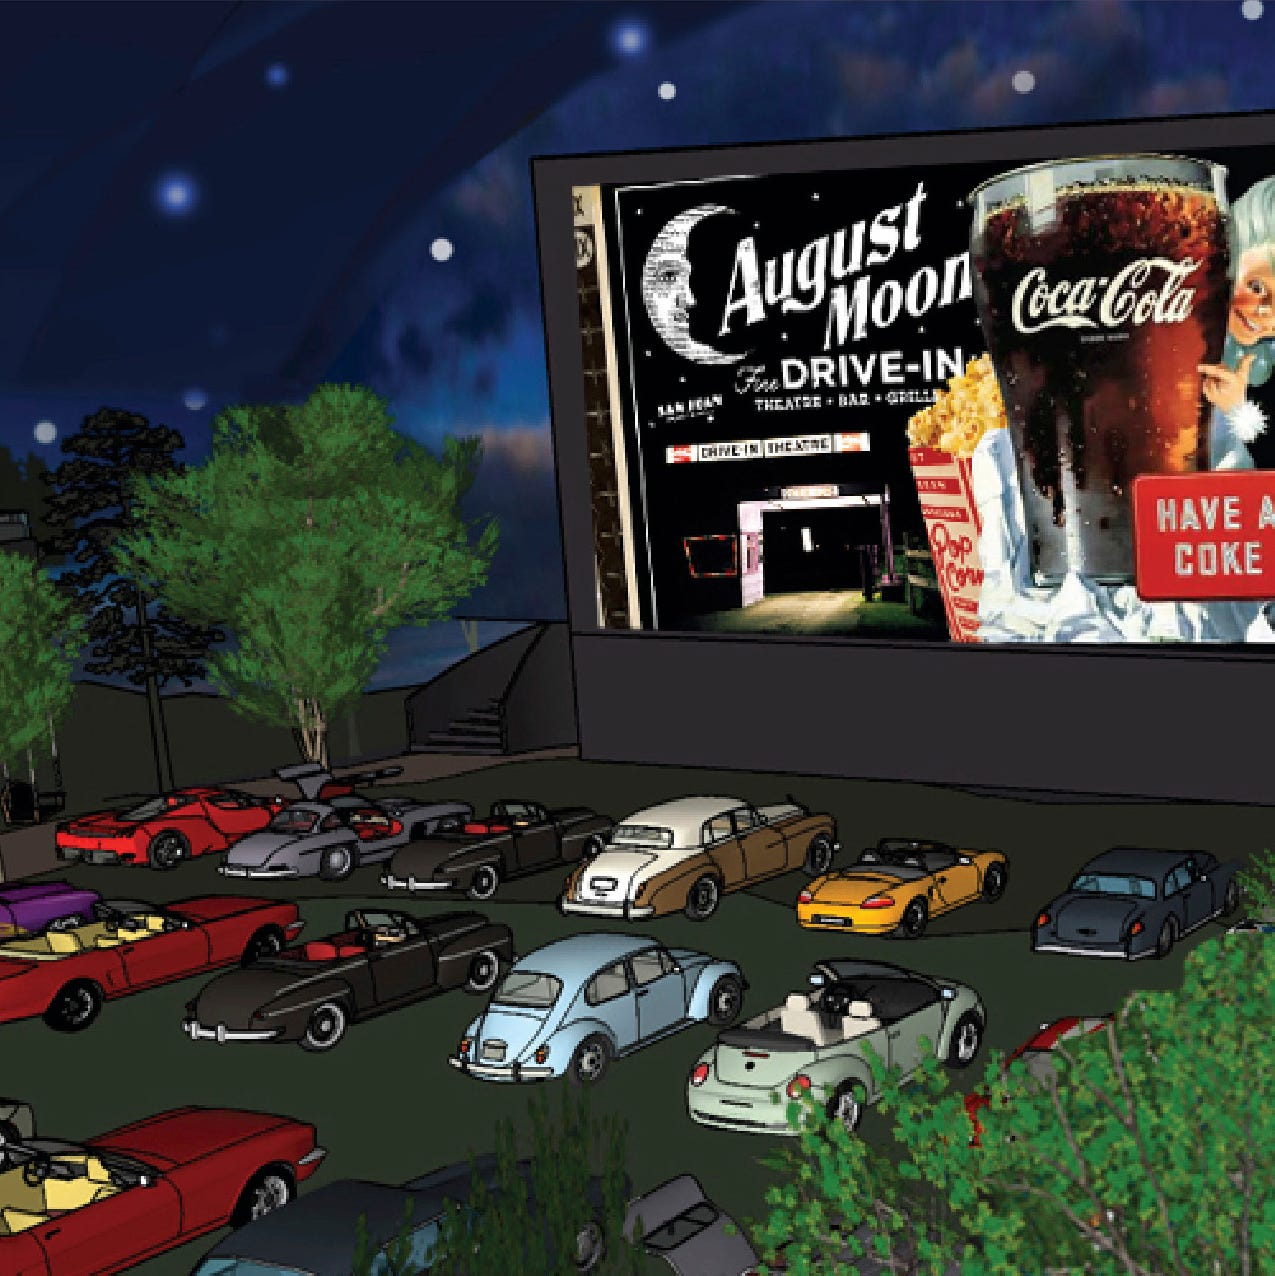 Pigeon Forge $7M concept August Moon Drive-In offers immersive movie experience